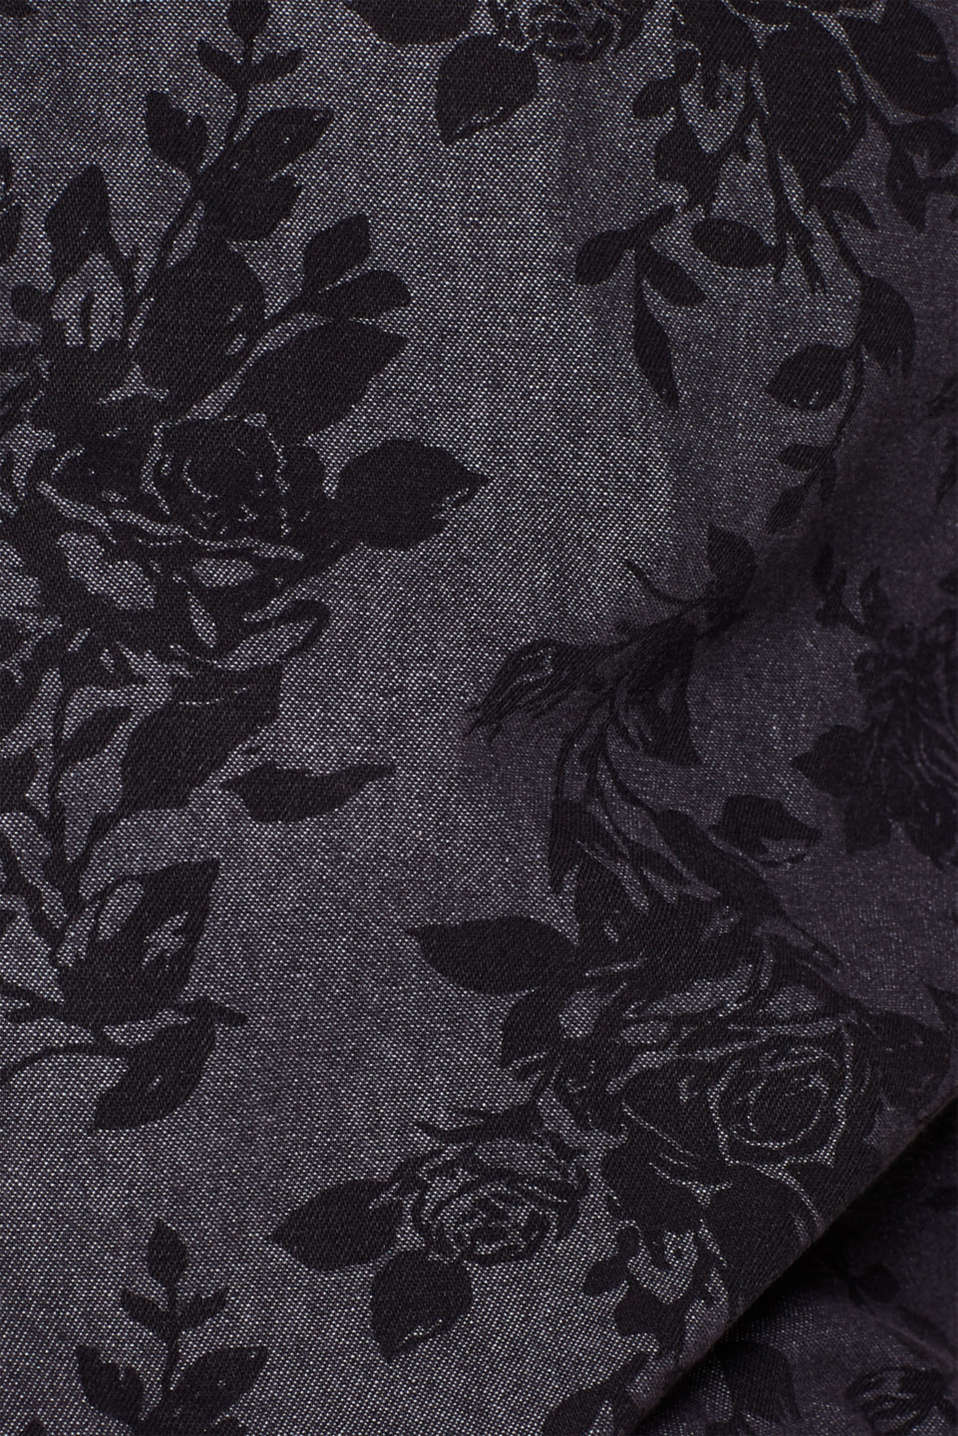 Denim top with a floral pattern, 100% cotton, BLACK, detail image number 4